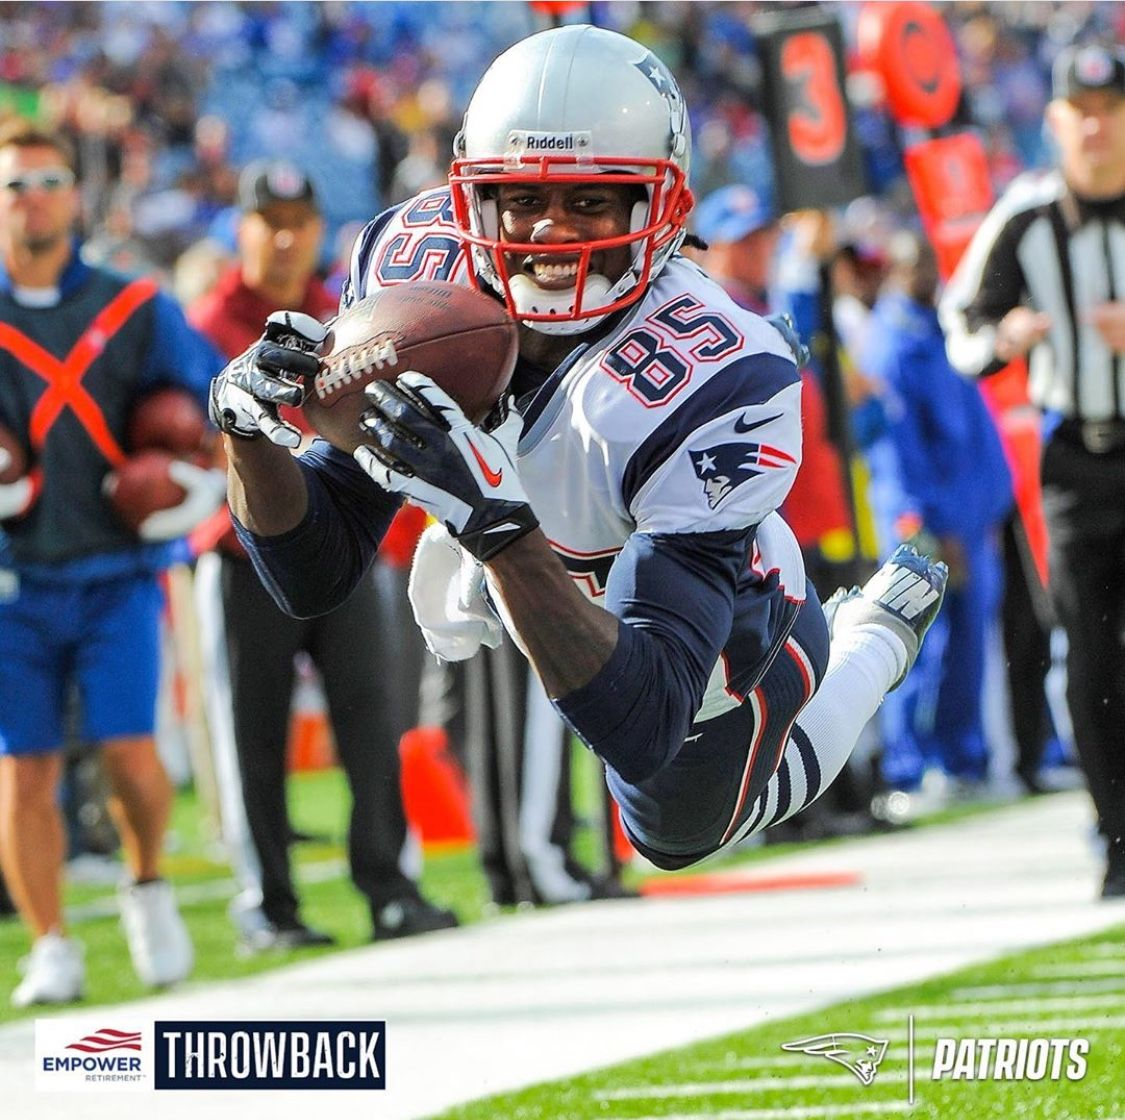 Brandon Lloyd With The Hilarious Catch Look At That Smile He Was A Solid Wideout Football Helmets New England Patriots Boston Sports